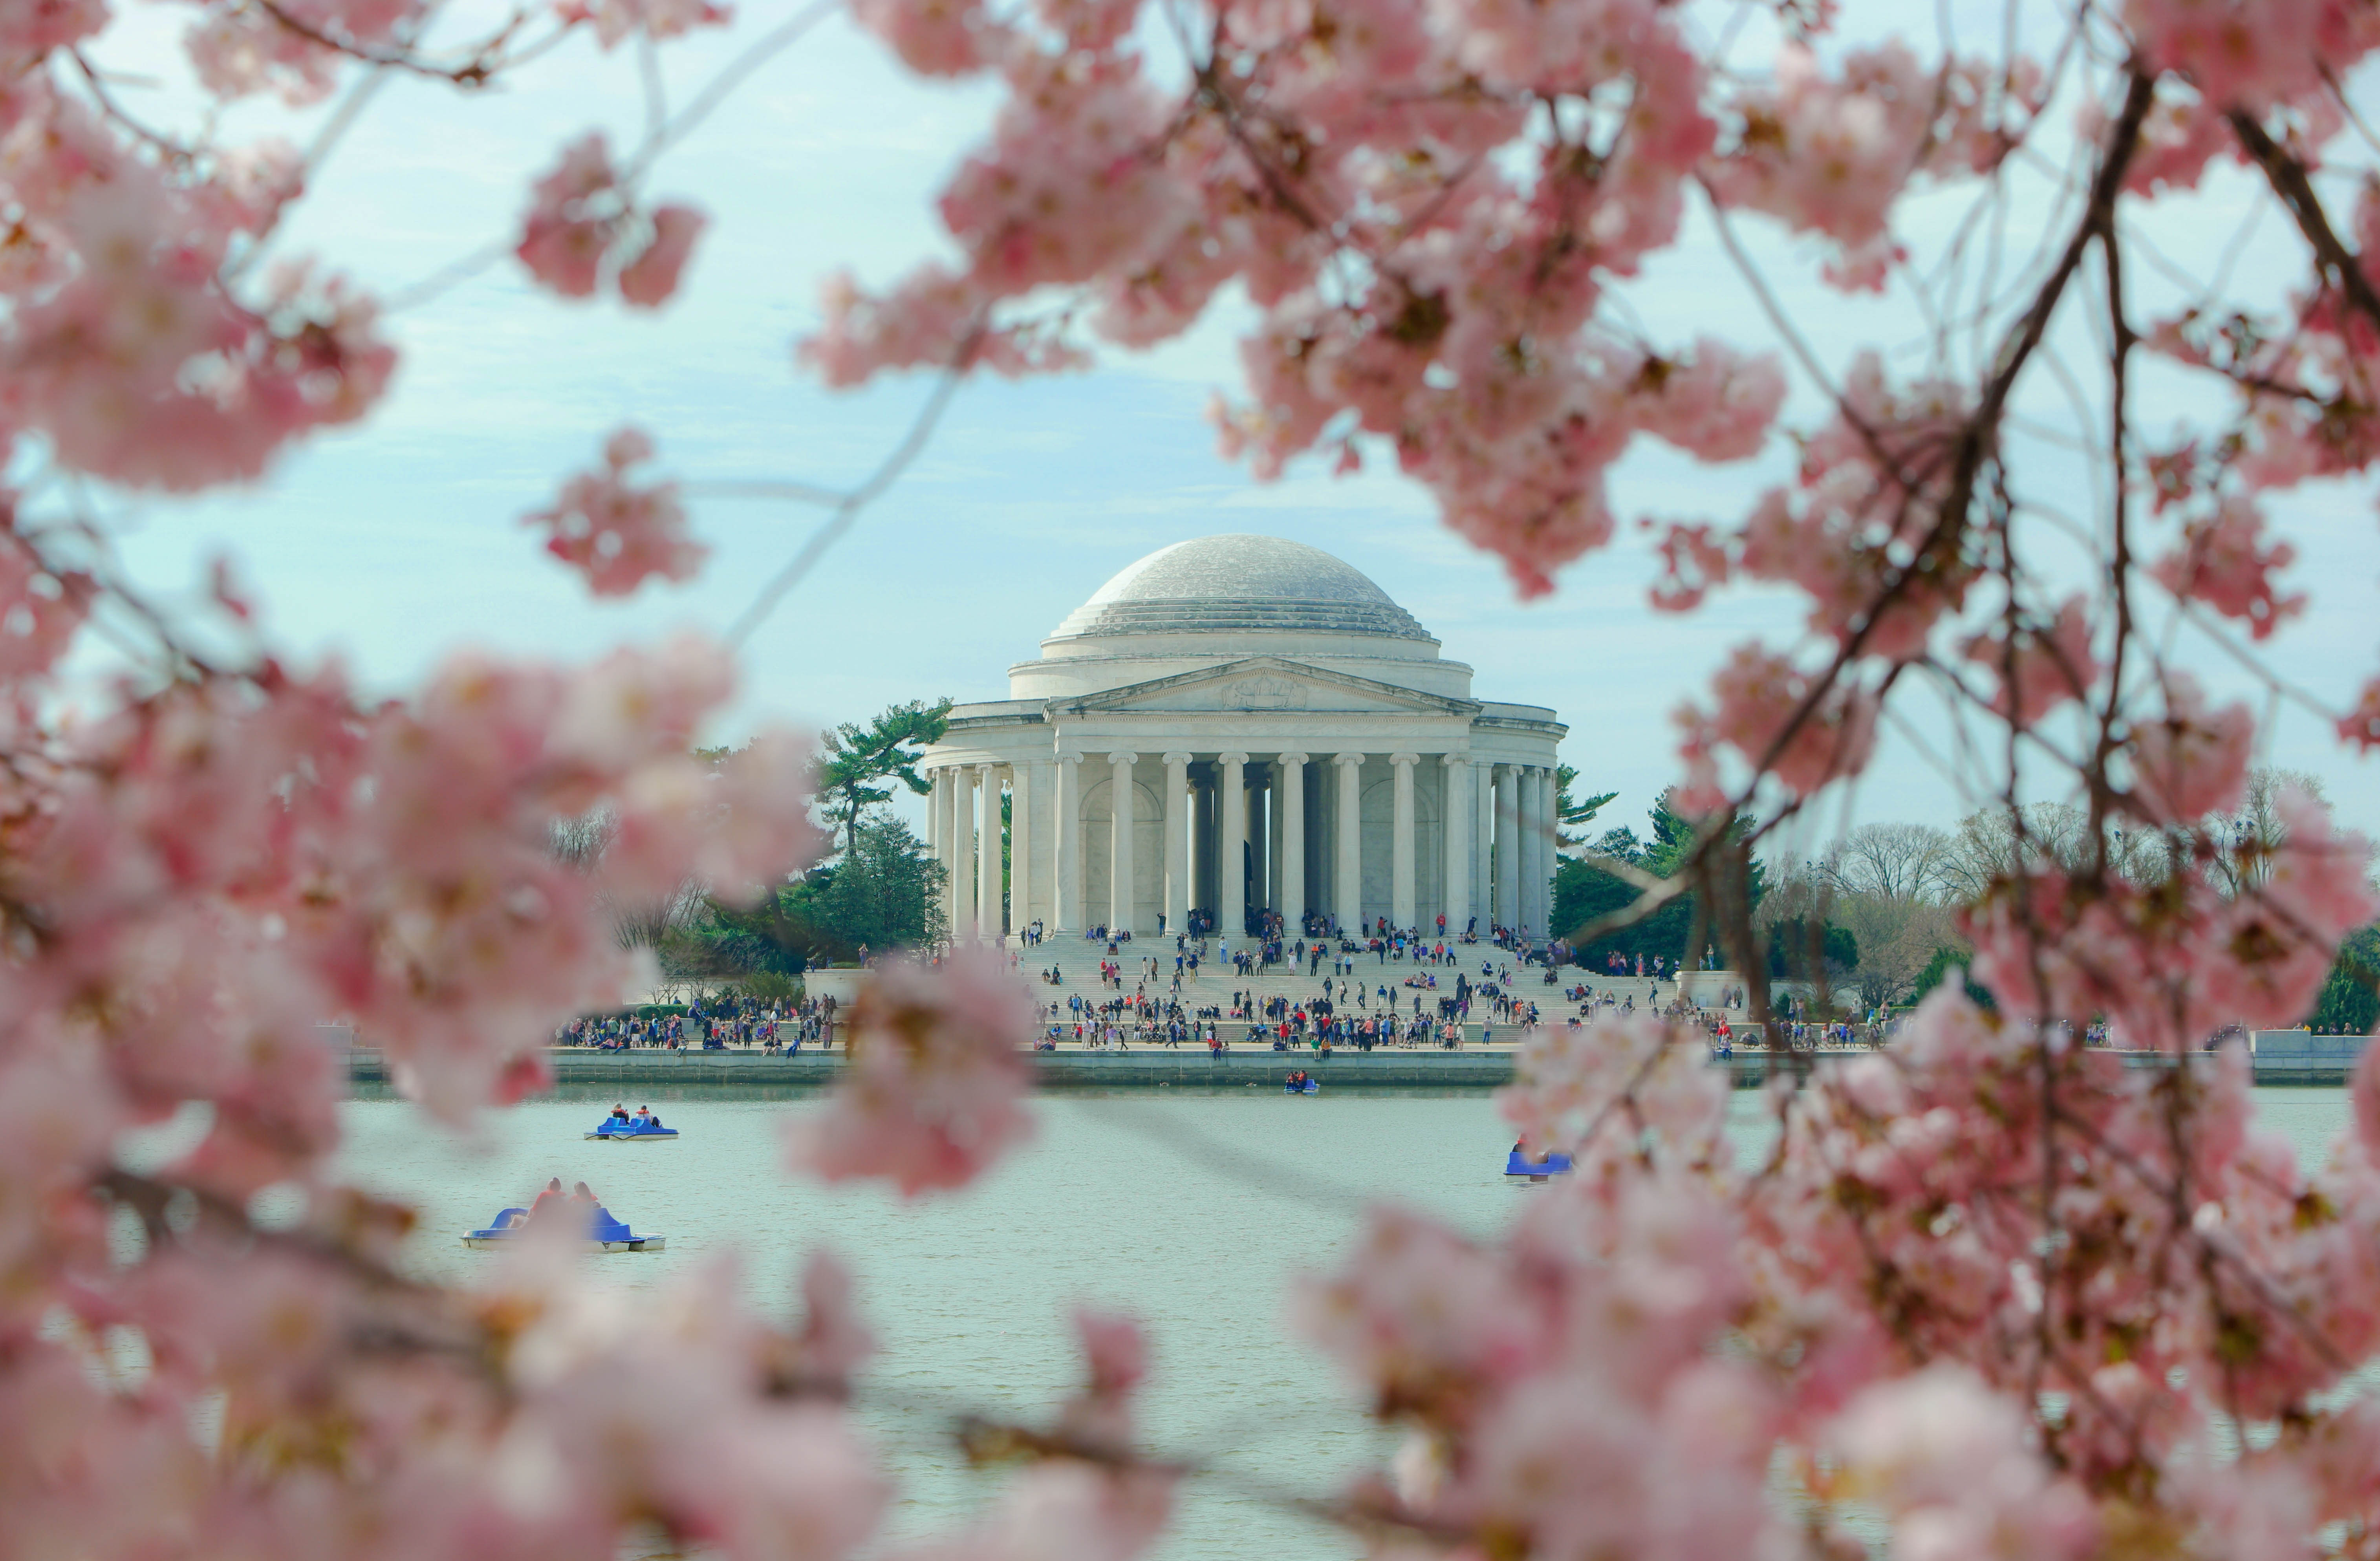 A Colorful Weekend Escape To The National Cherry Blossom Festival Whyy,Perennials Plant With Purple Flowers And Green Leaves